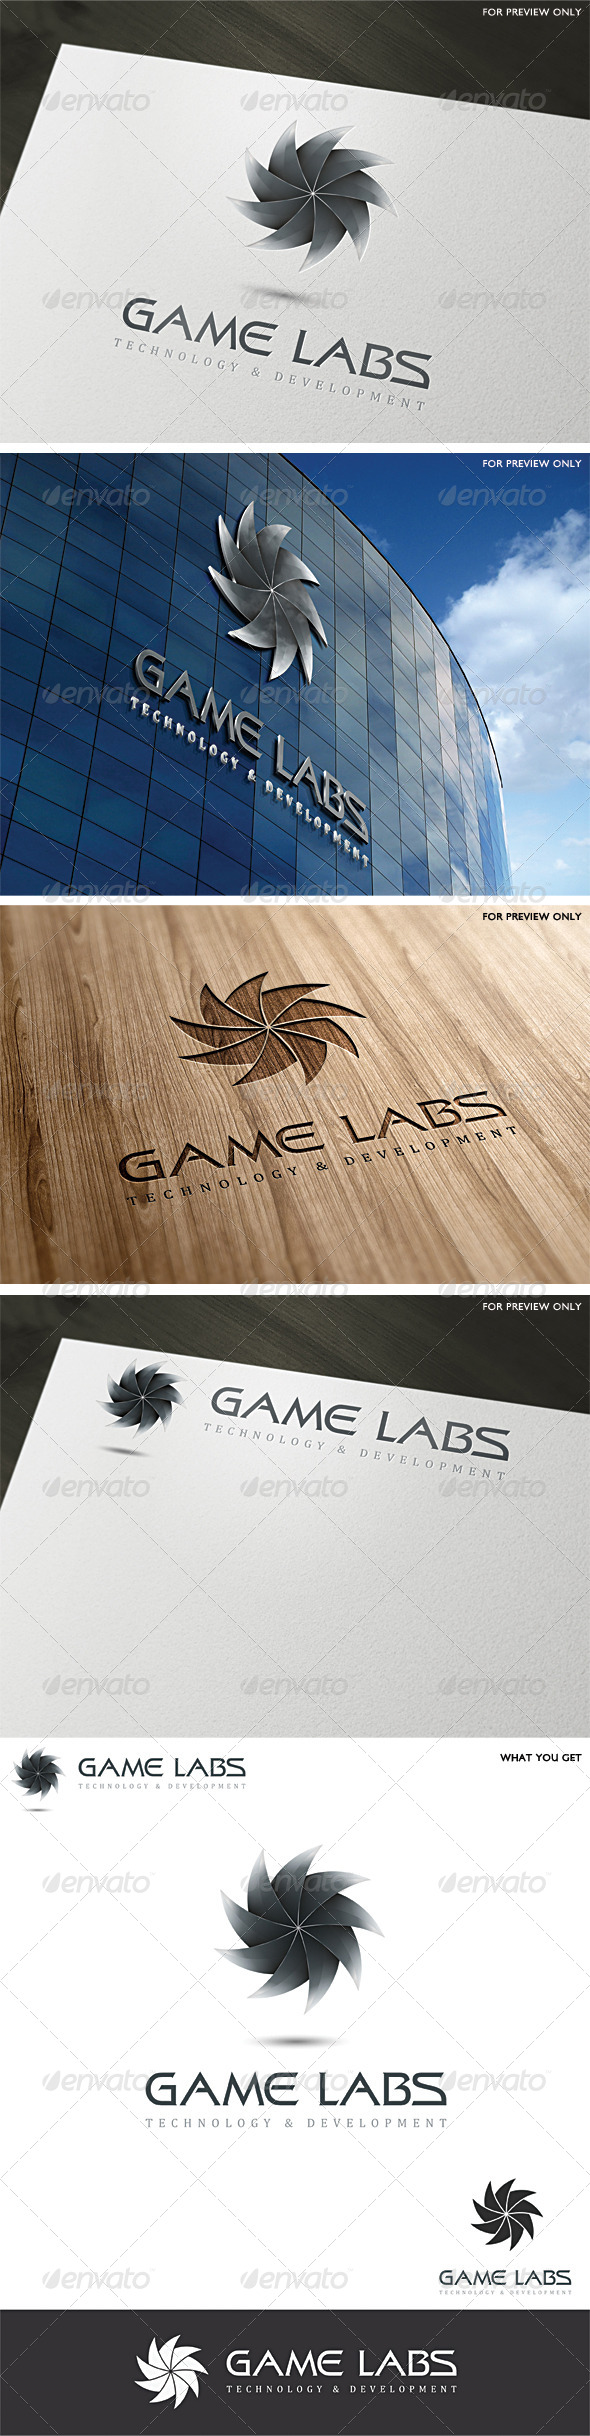 3D Game Labs Logo Template v3 - 3d Abstract